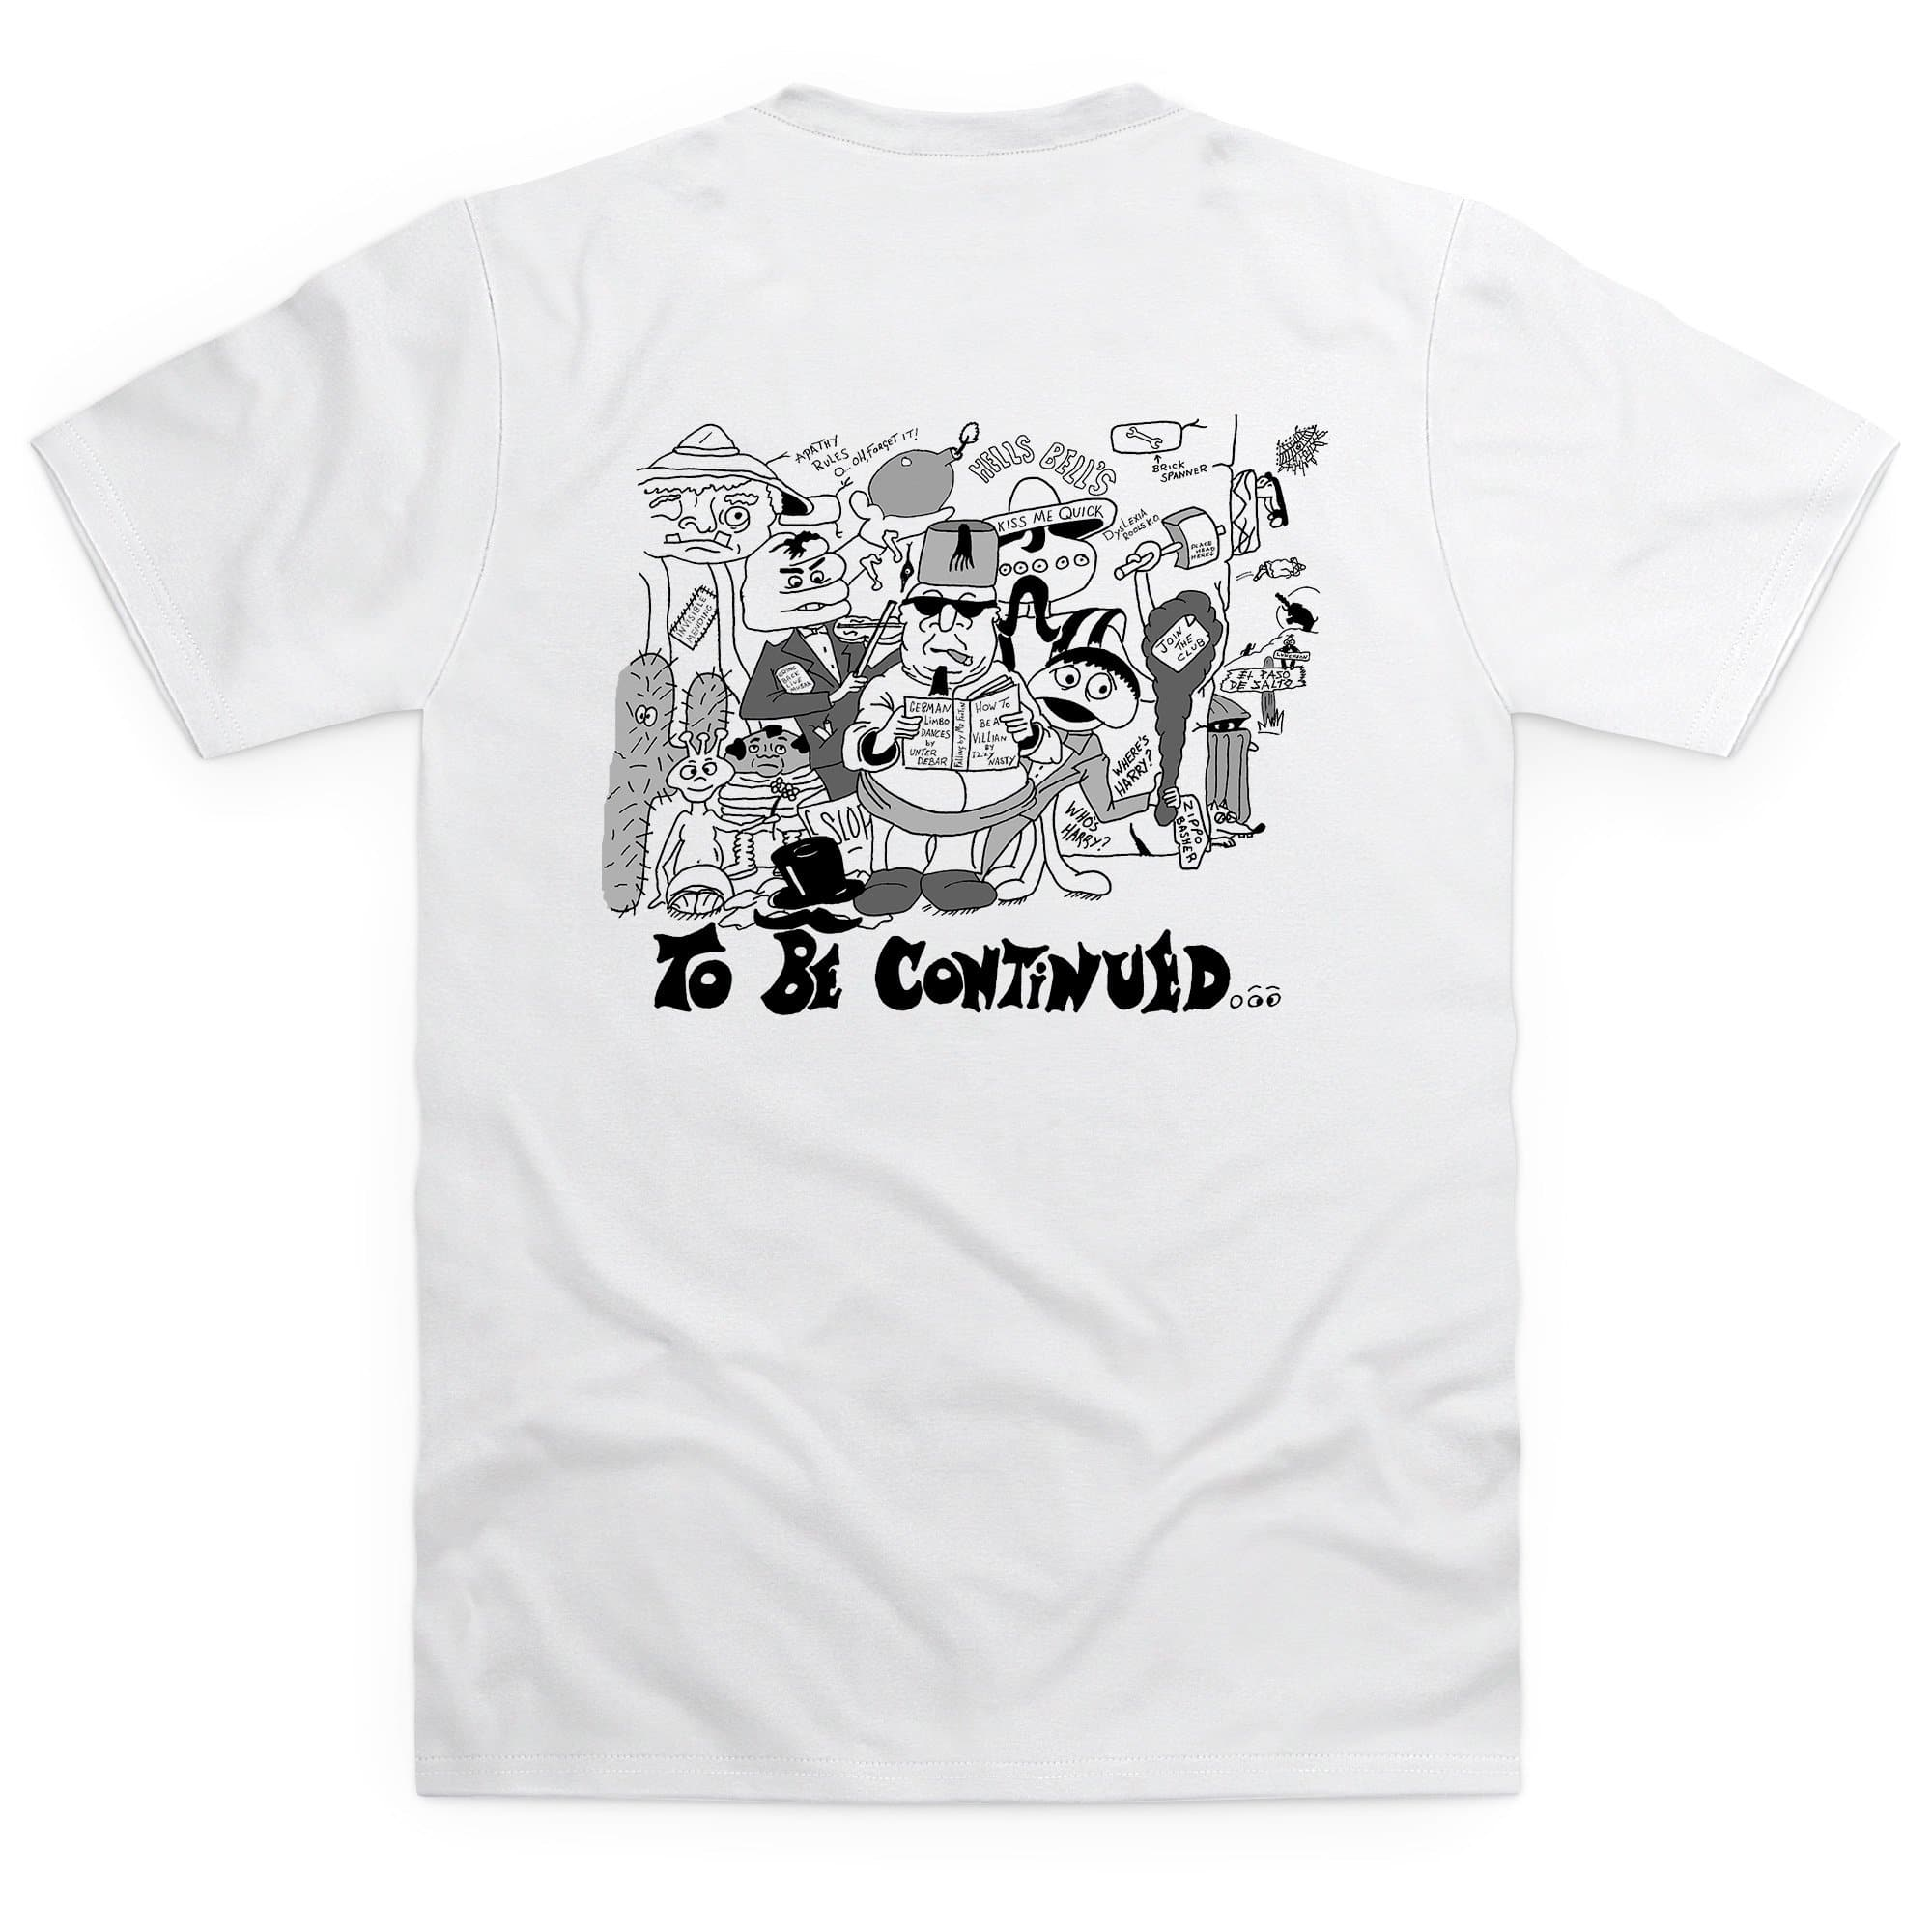 Dick Spanner Comic Strip Kid's White T-Shirt [Official & Exclusive] - The Gerry Anderson Store